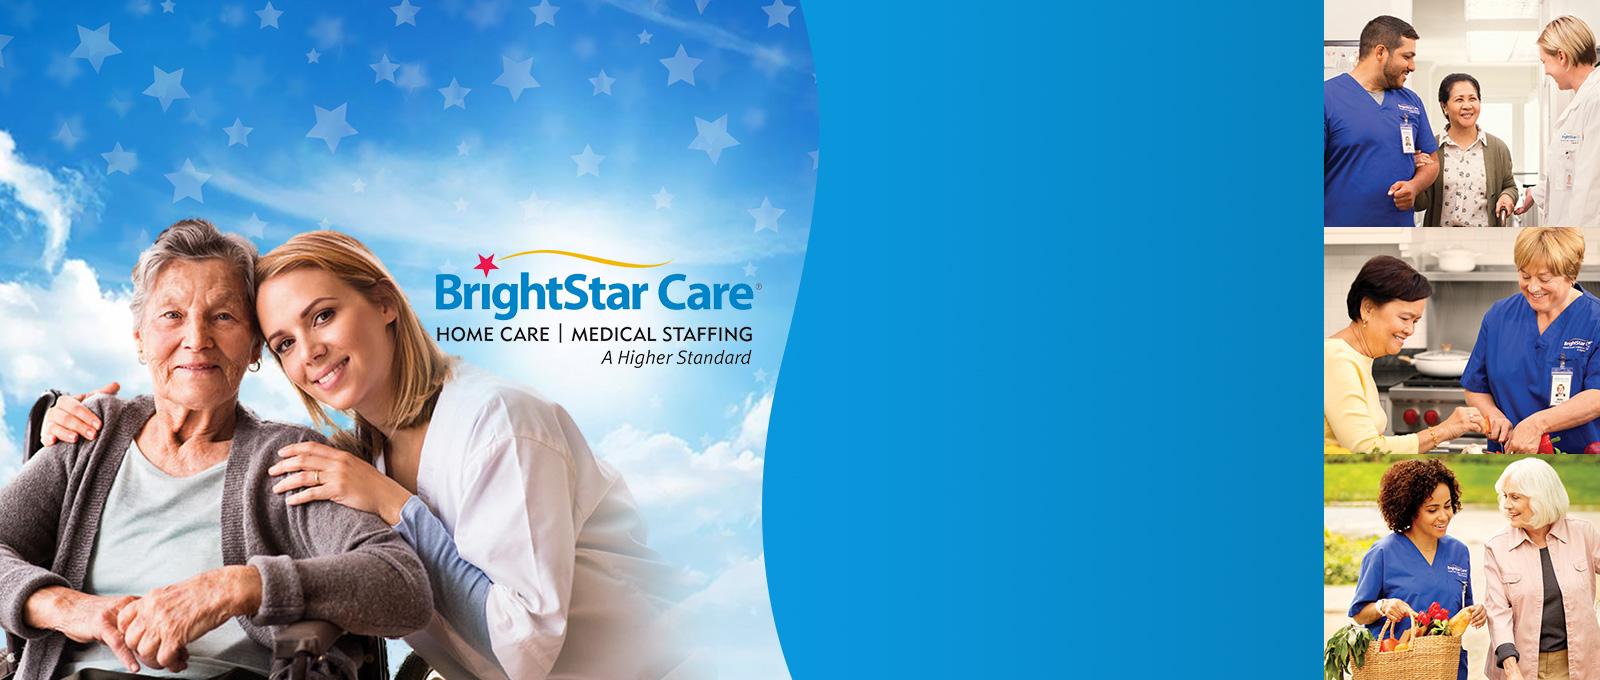 October Happy Hour with BrightStar Care